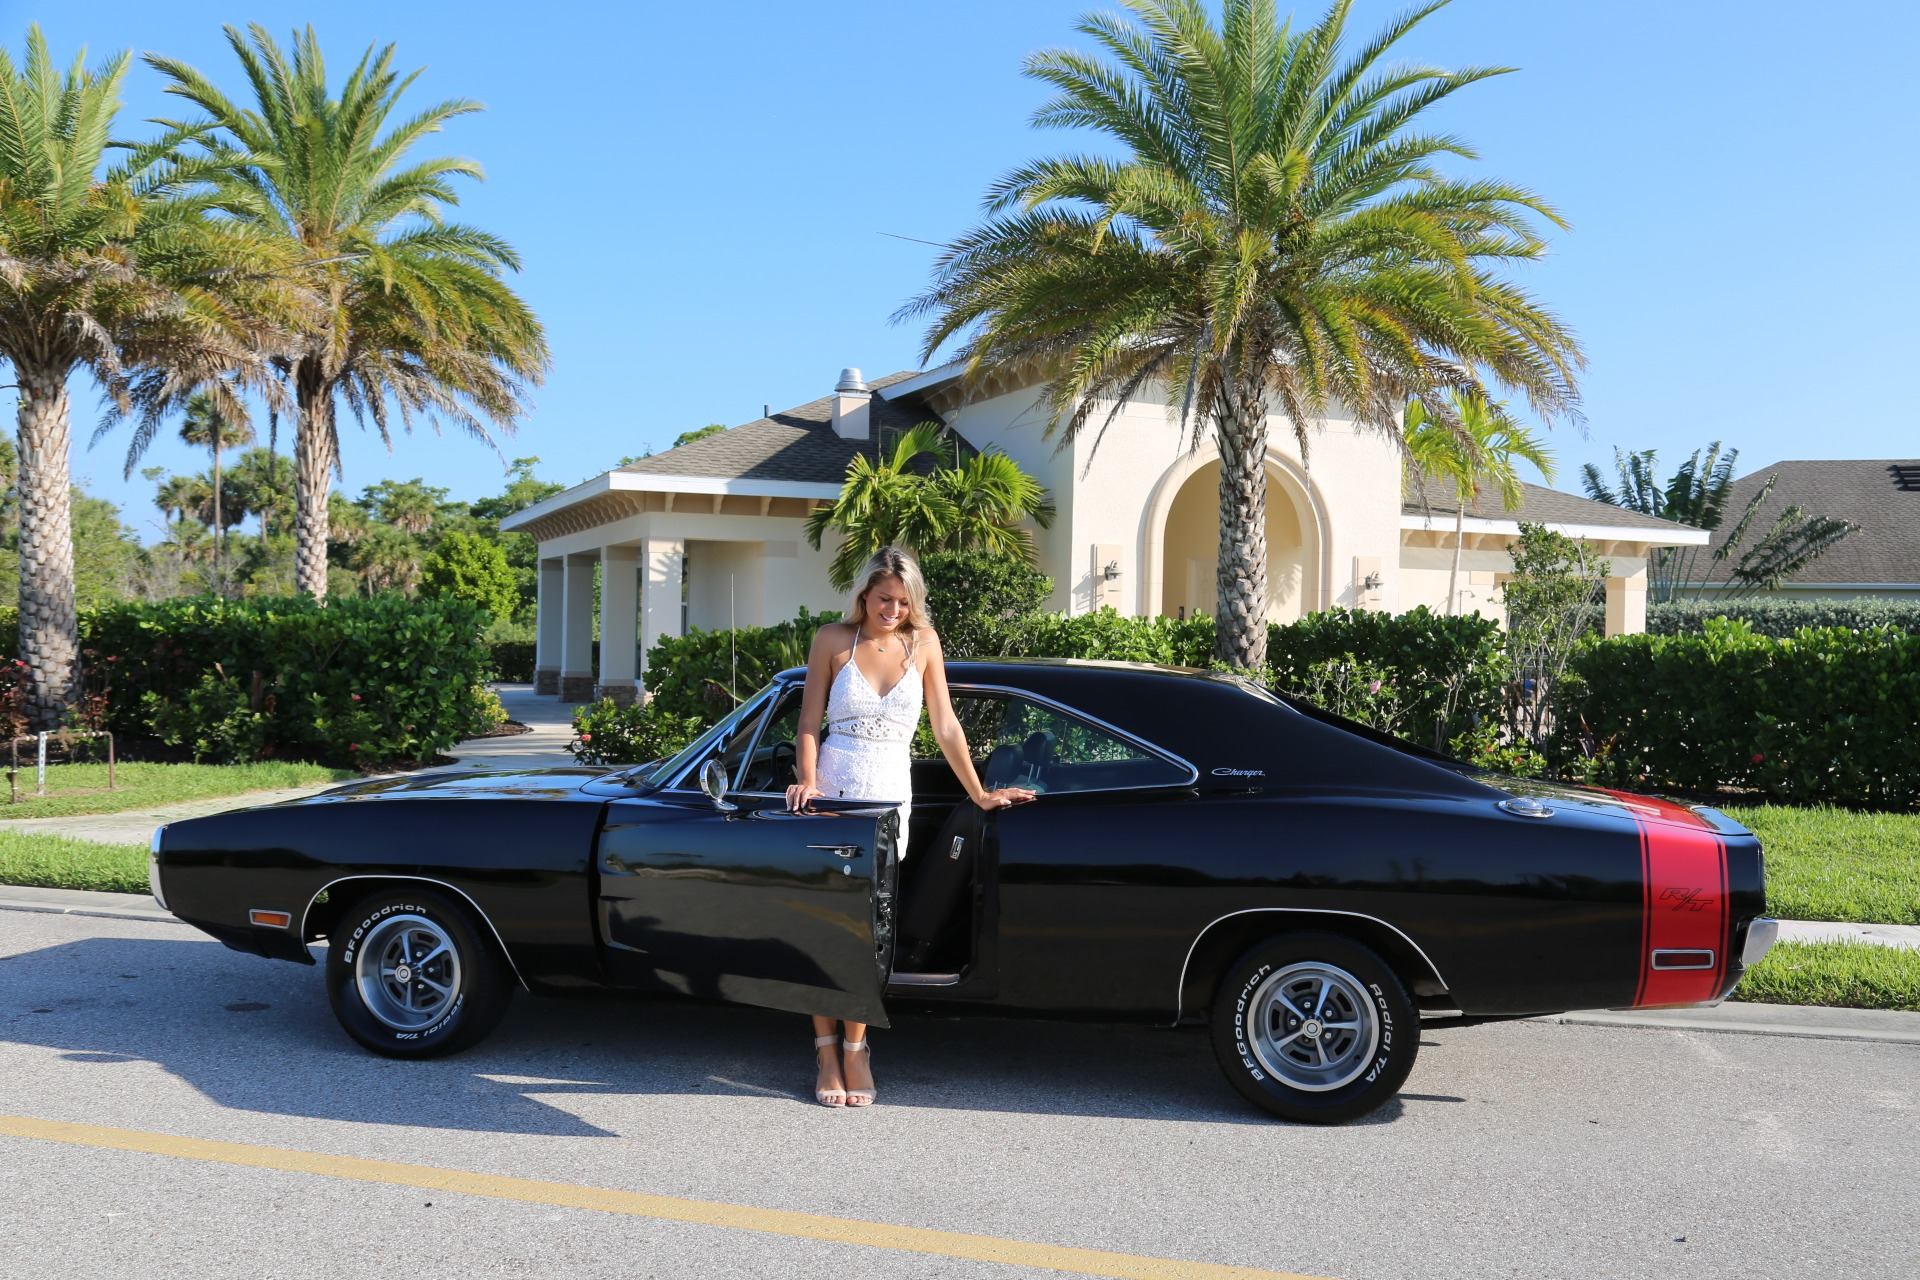 Used 1970 Dodge Charger Charger for sale $52,000 at Muscle Cars for Sale Inc. in Fort Myers FL 33912 2